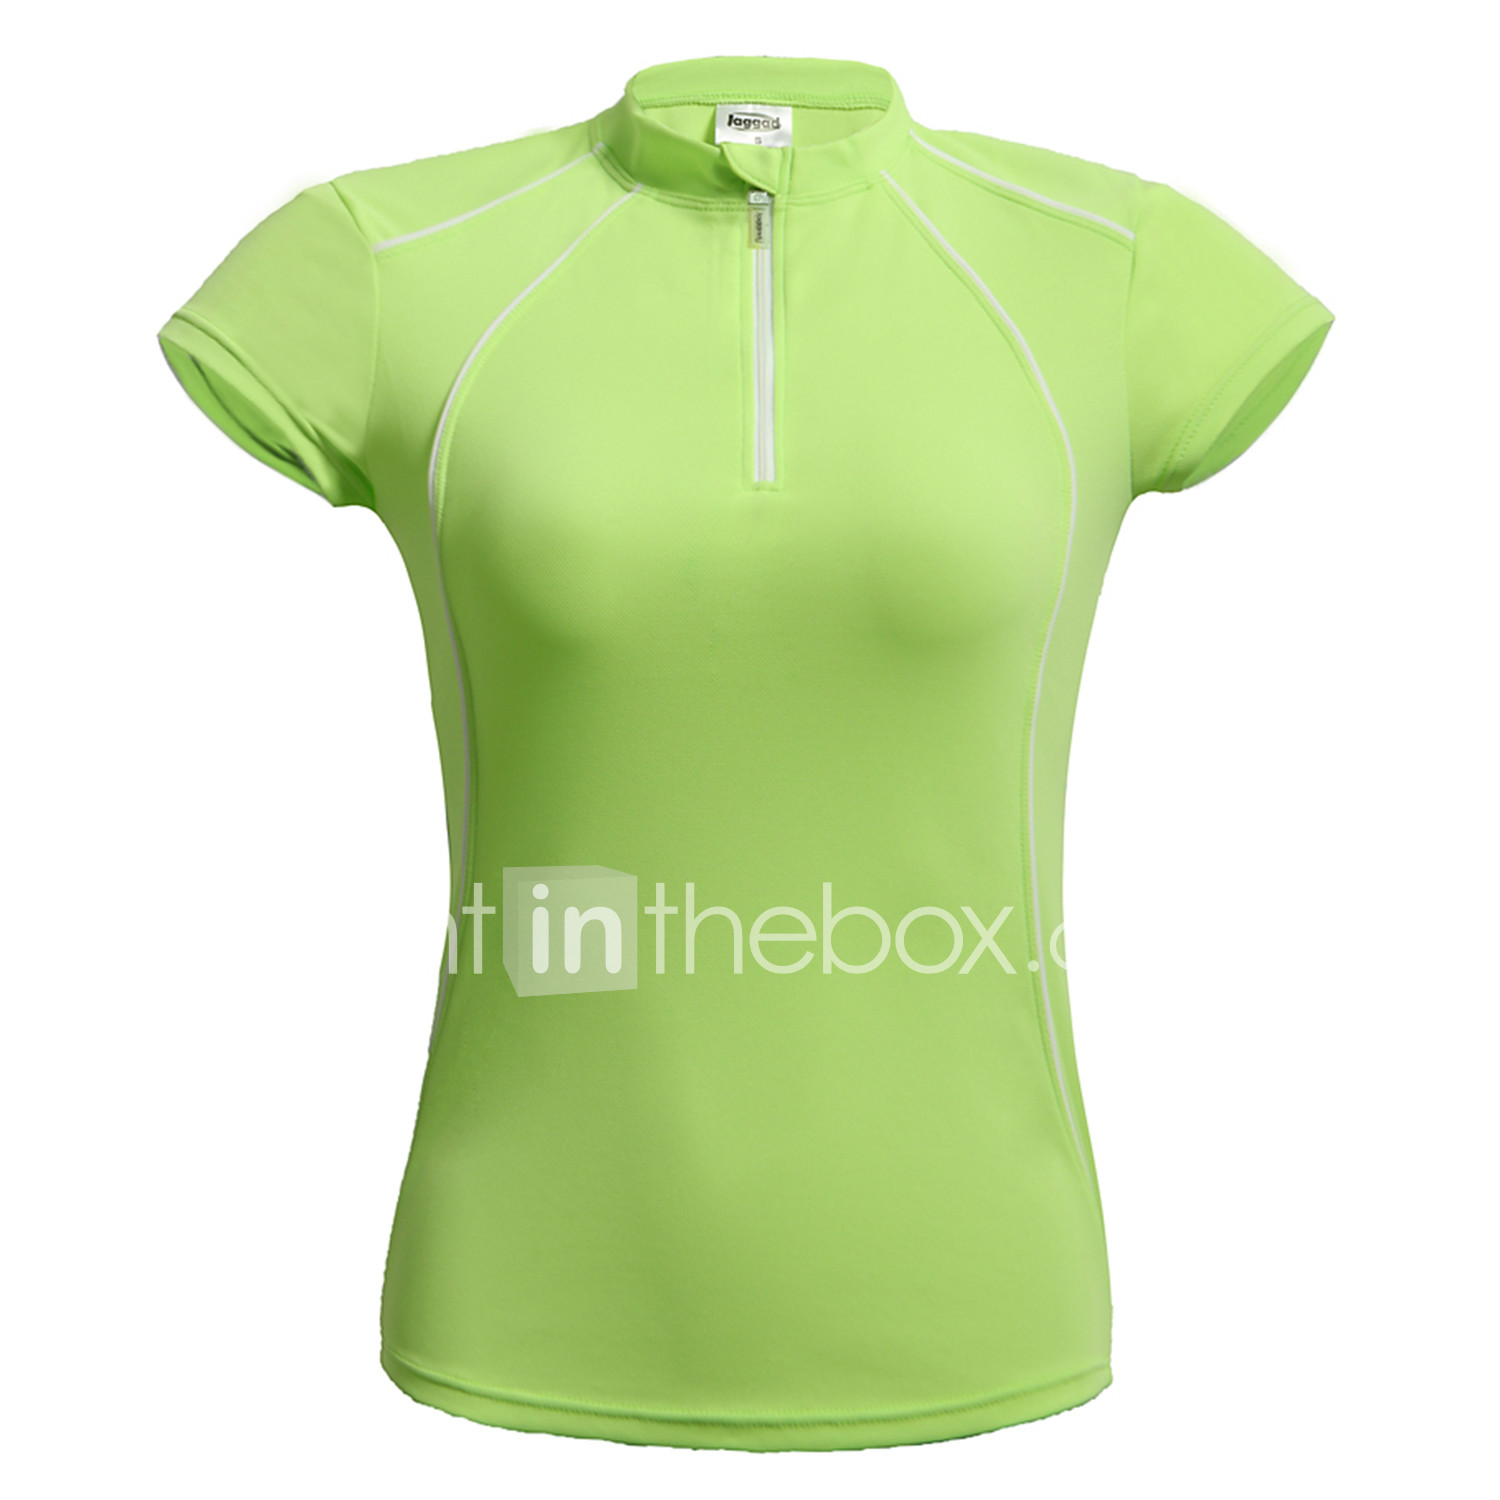 Jaggad Women s Short Sleeve Cycling Jersey - Blue Pink Light Green Solid  Color Bike Jersey Top cf2c243ea